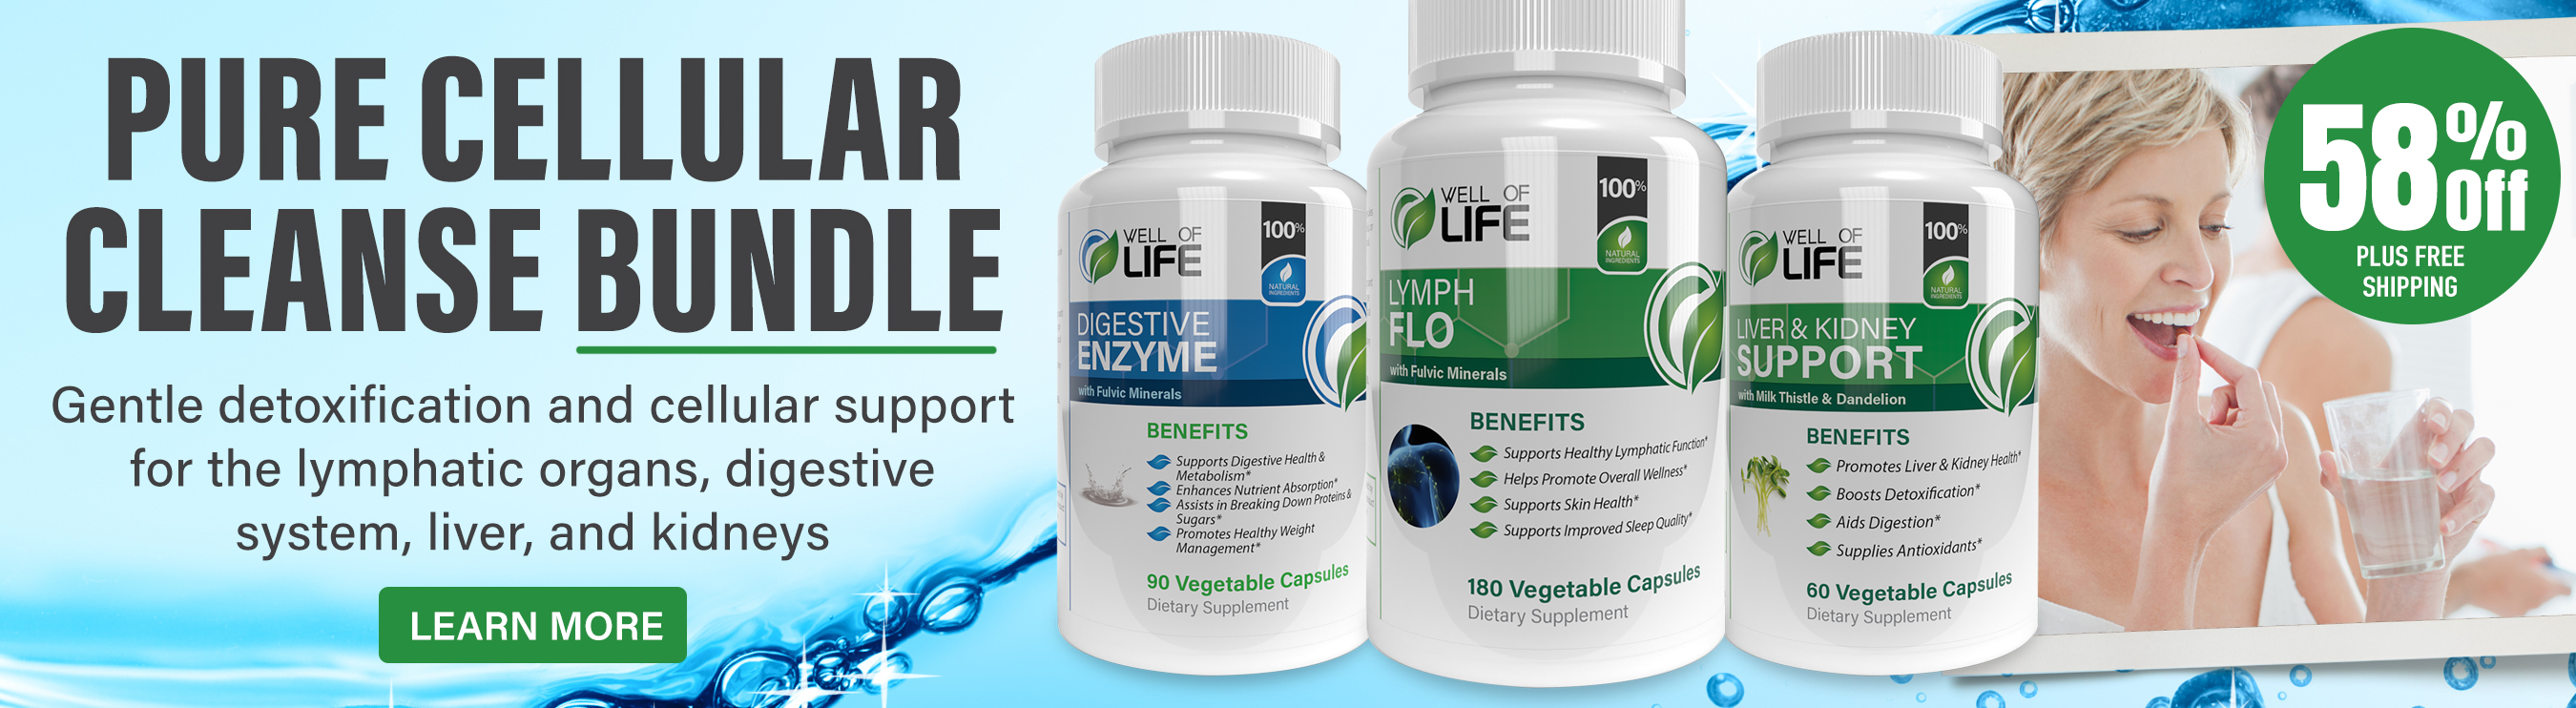 Pure-Cellular-Cleanse-Bundle-Banner-2700x742-01